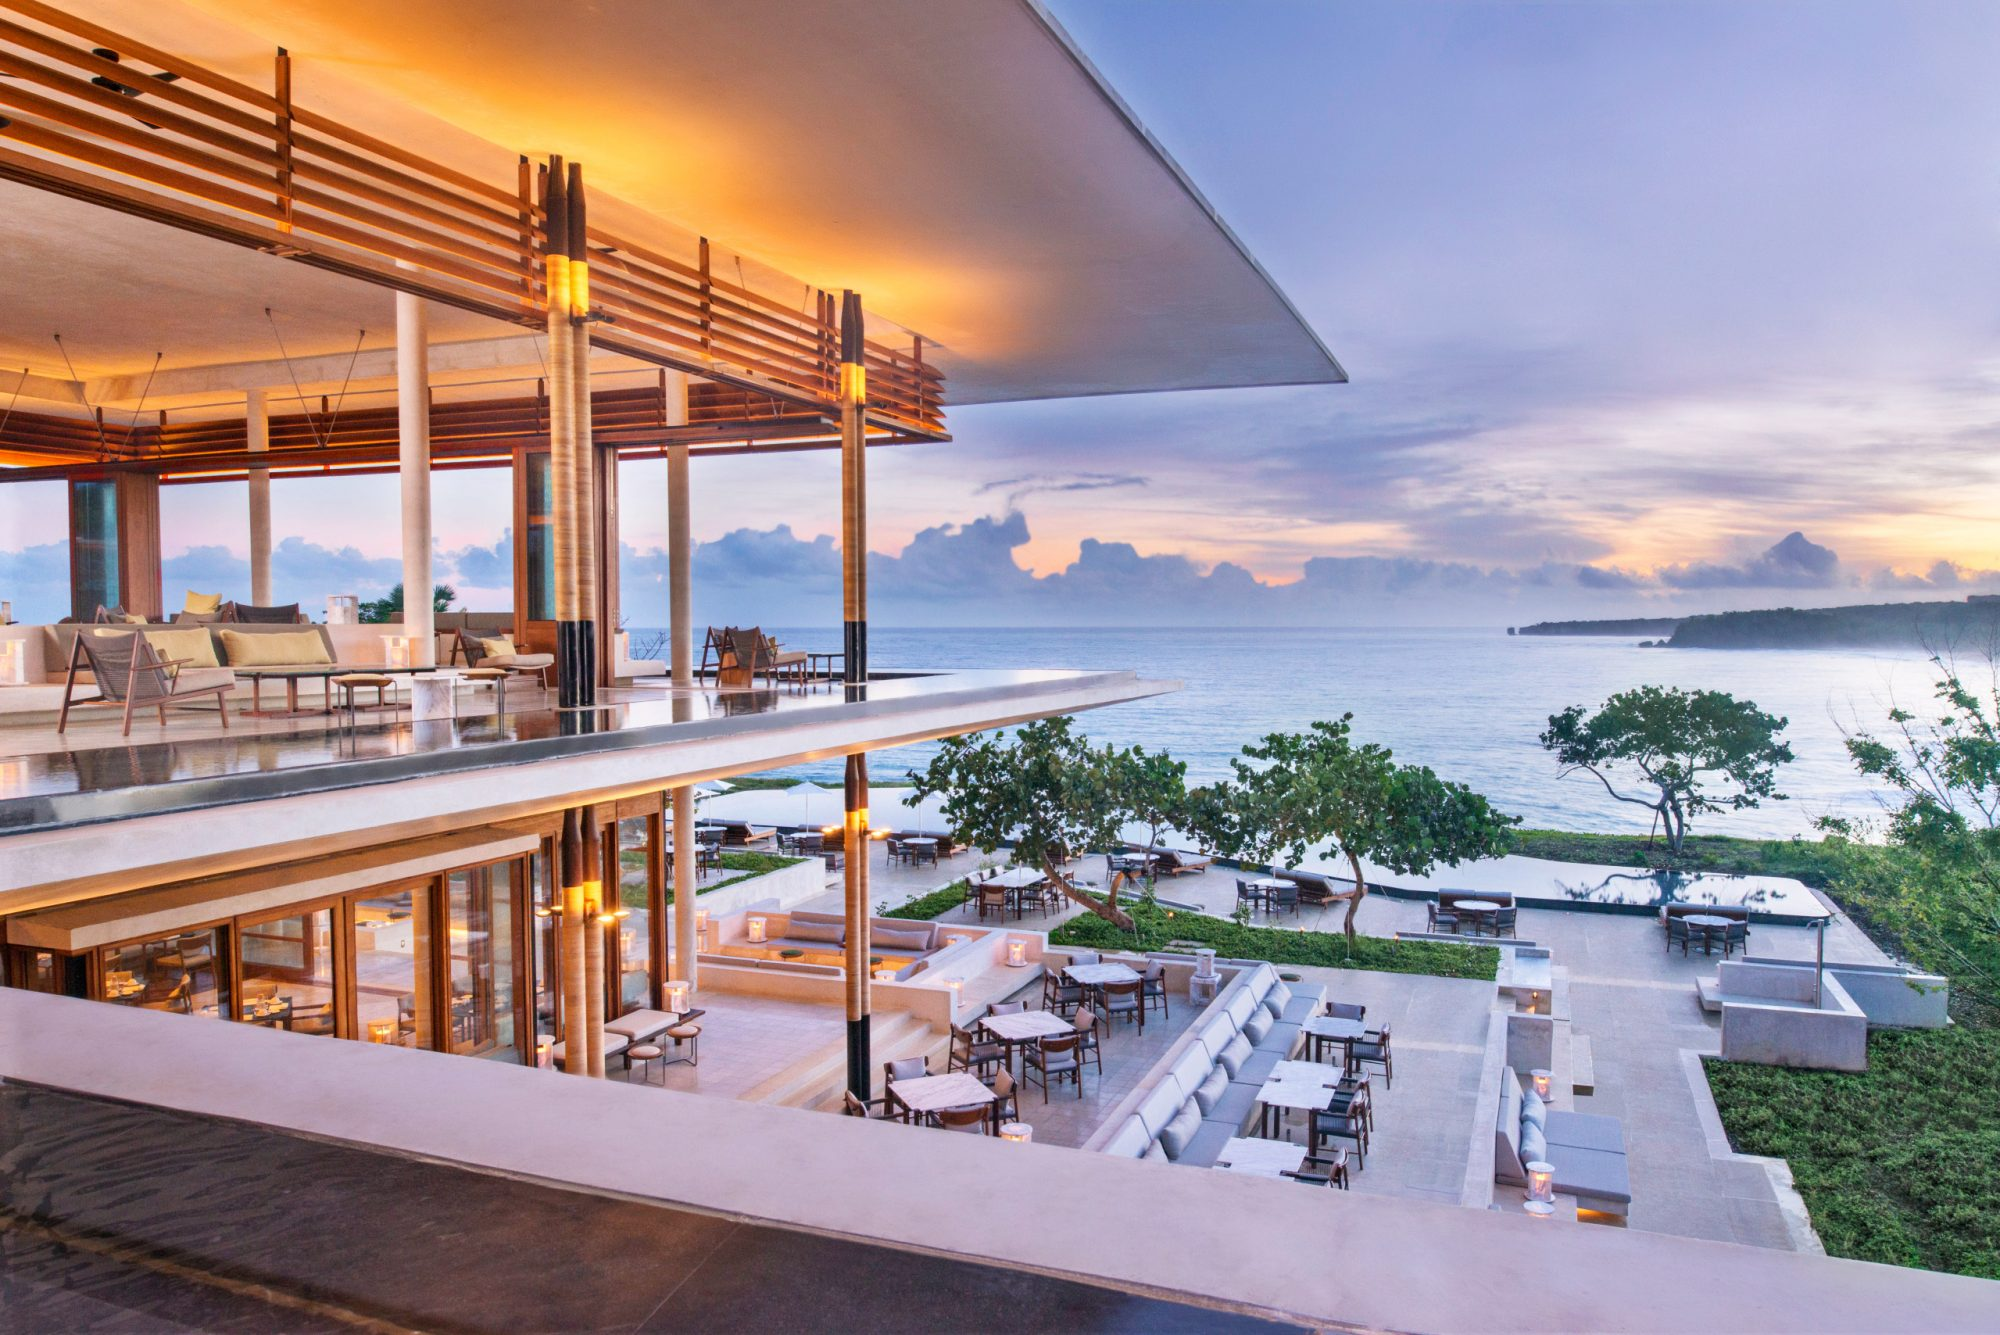 Located on the Dominican Republic's tranquil northern shore is this drop-dead-gorgeous haven, the Aman group's second Caribbean hotel. Crowd-shy sybarites will thrill to the resort's secluded setting among 2,170 acres of pristine tropical forest overlooki